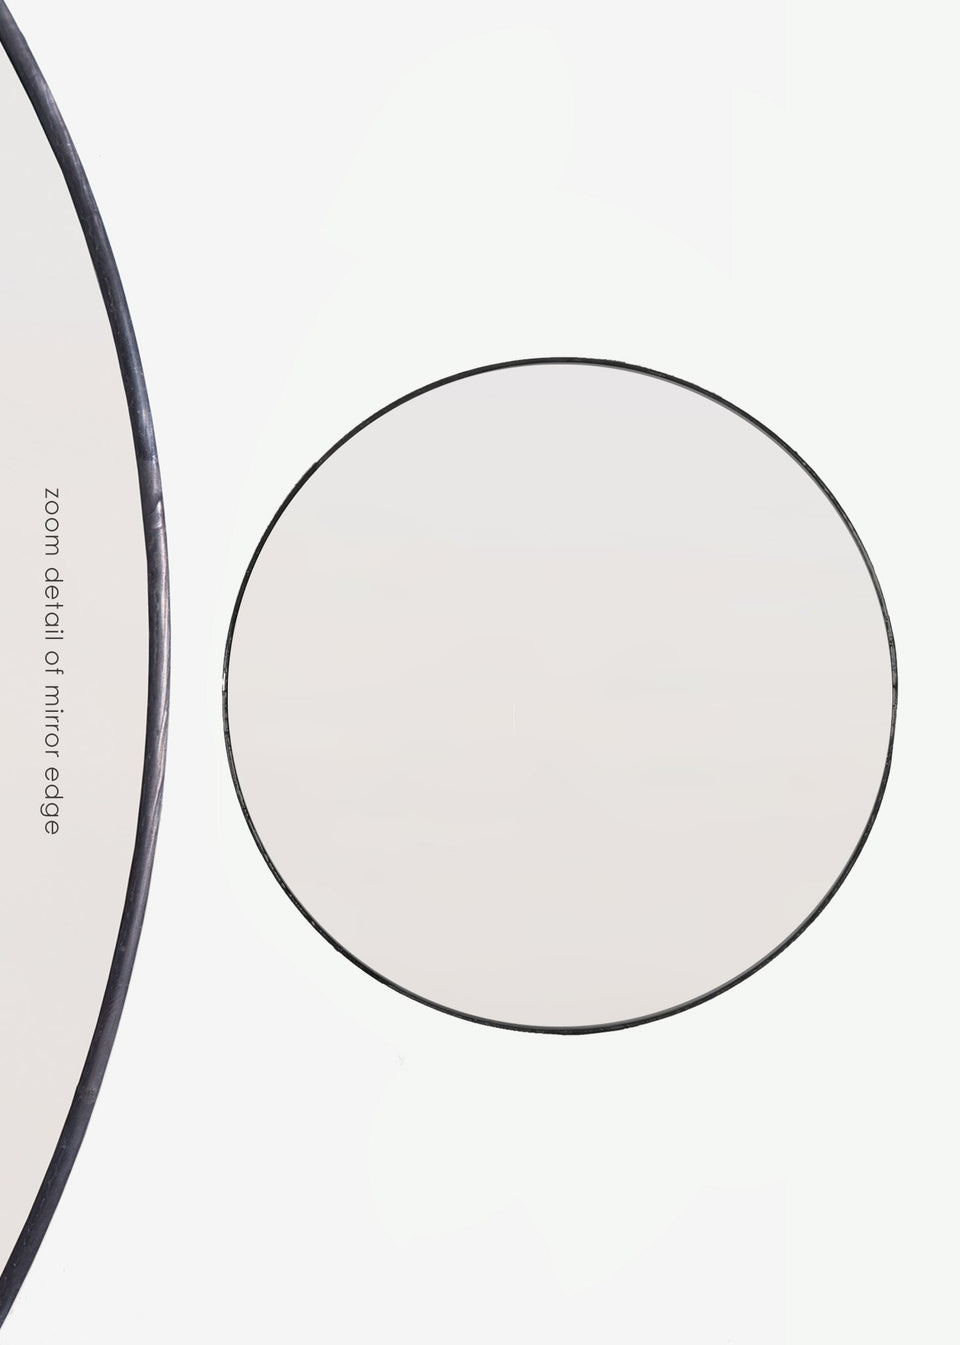 Giant Classic Circular Mirrors